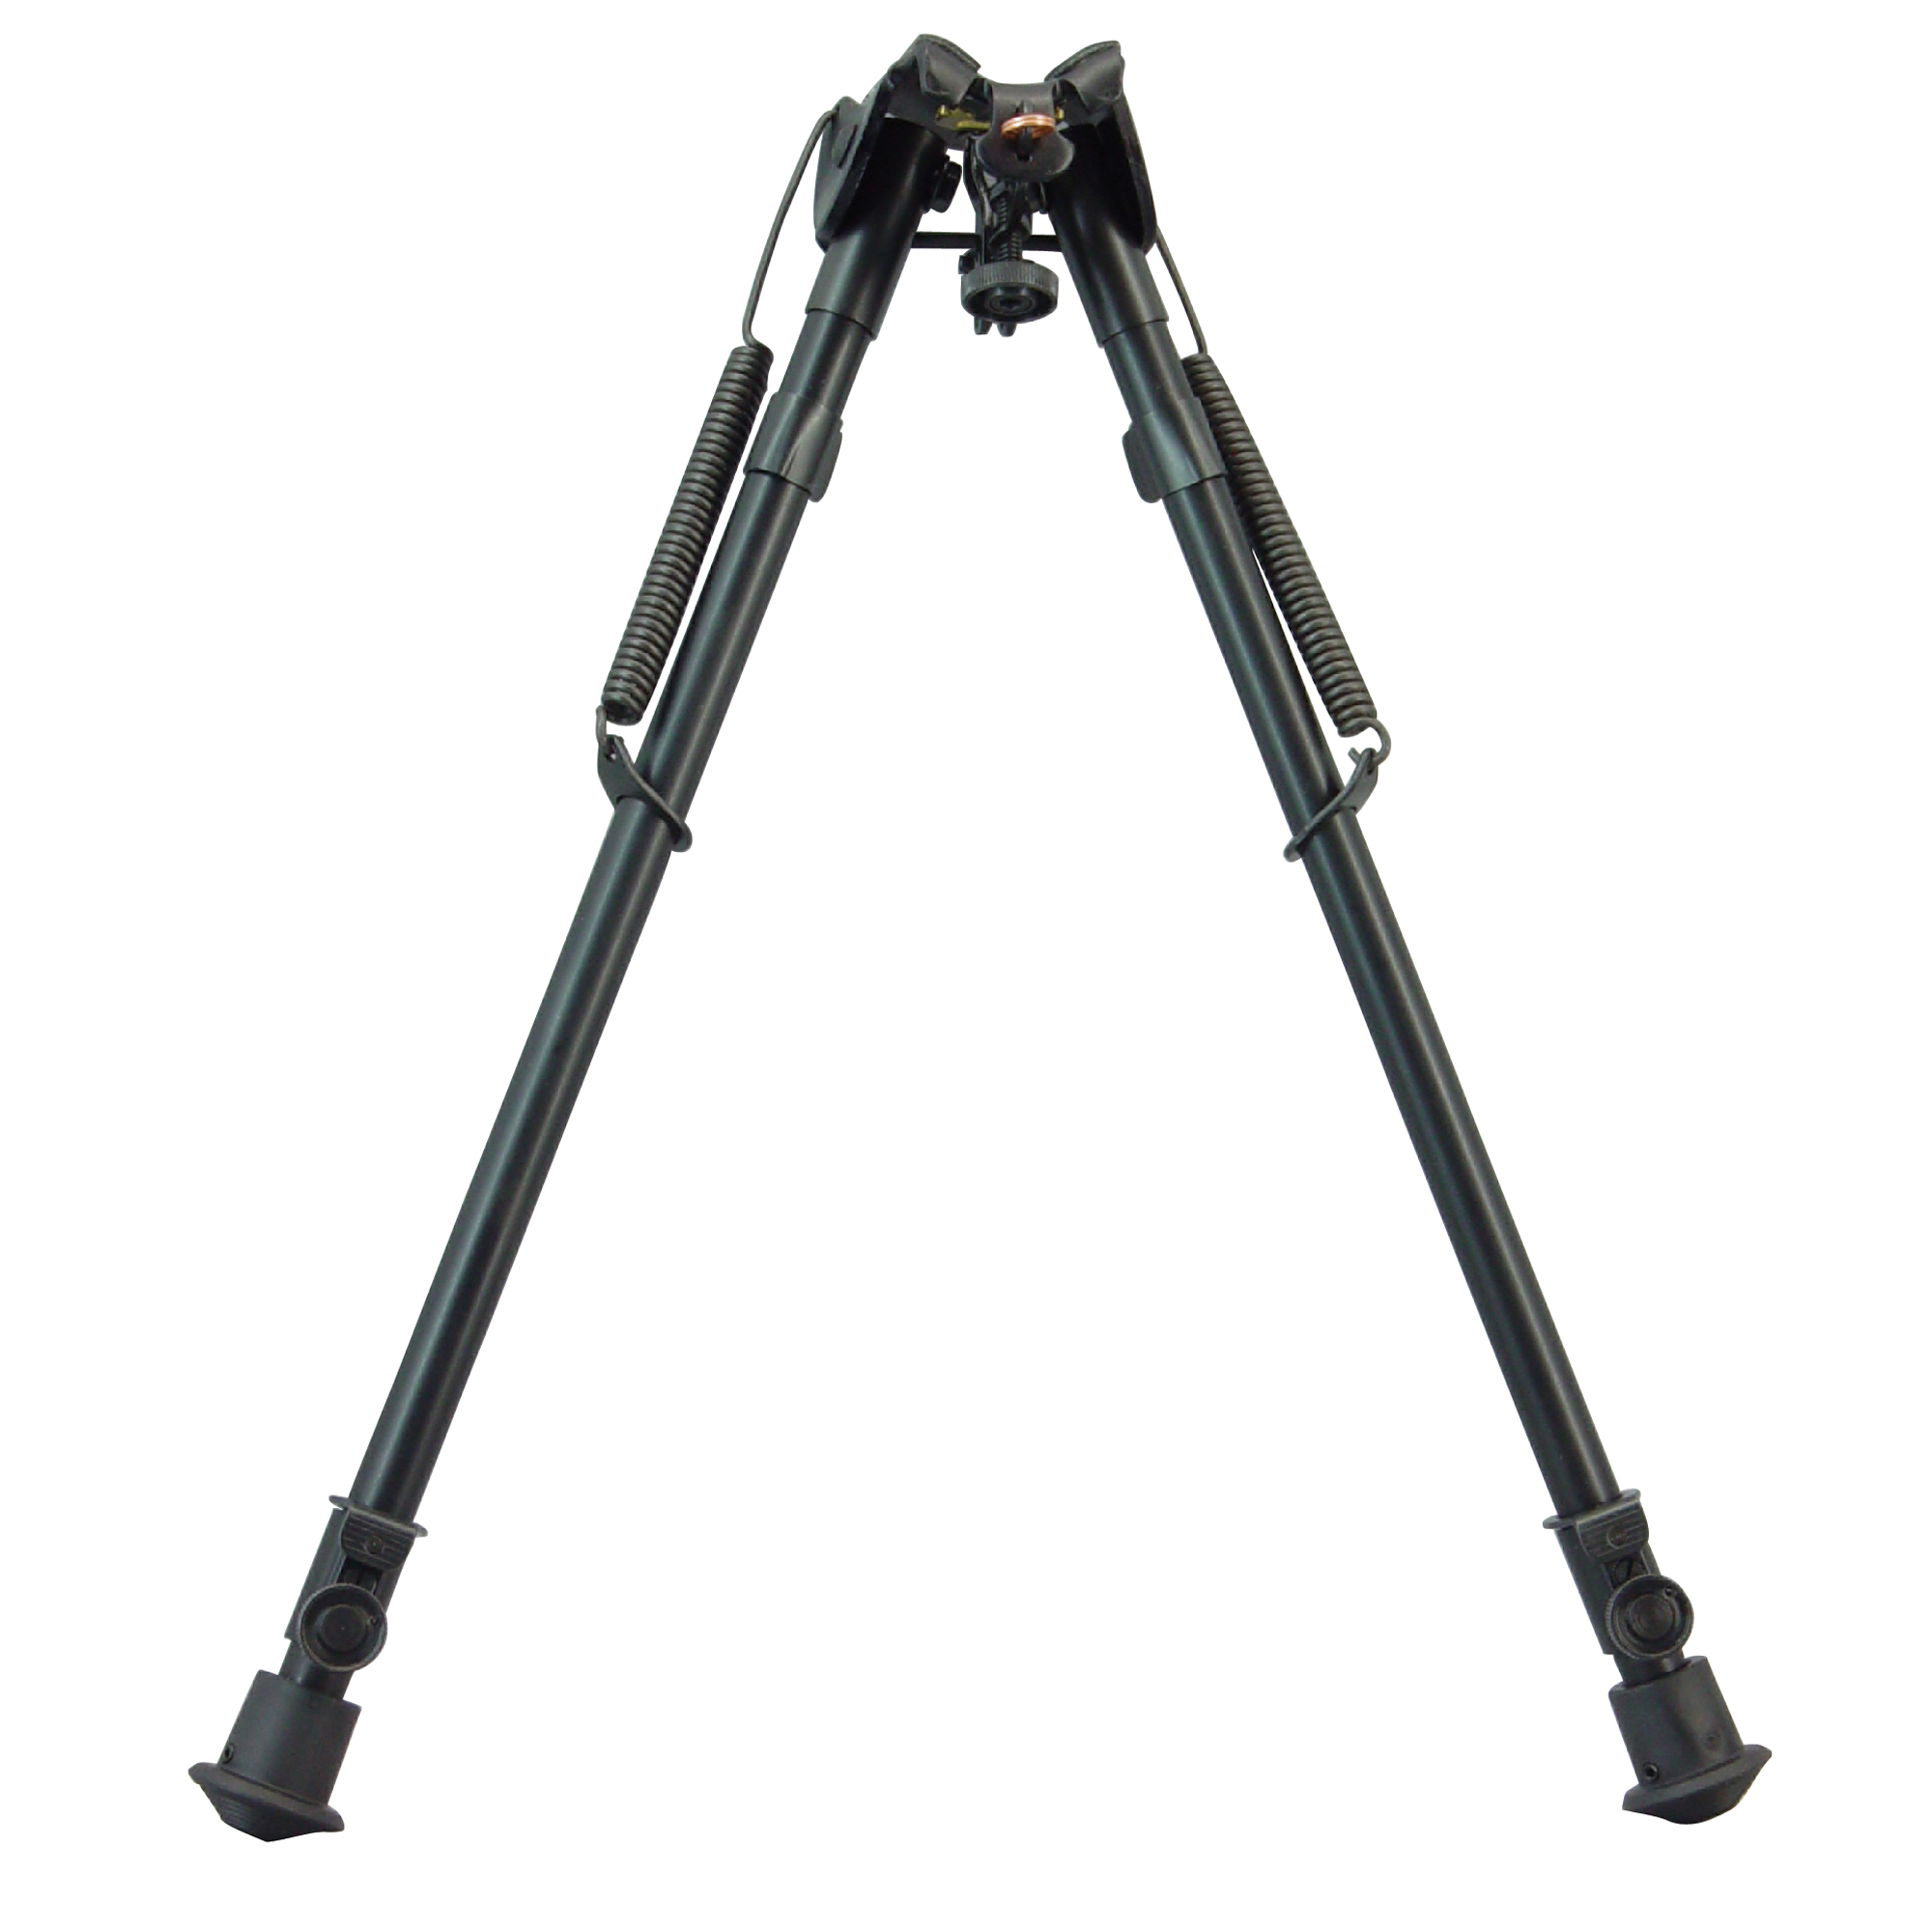 """Harris Engineering's 13.5""""-23"""" High Fixed Ultra-Light Bipod is manufactured using high quality parts to ensure excellent function and sustainable use. It attaches to a Sling Swivel Stud. The bipod features an anodized matte black finish."""